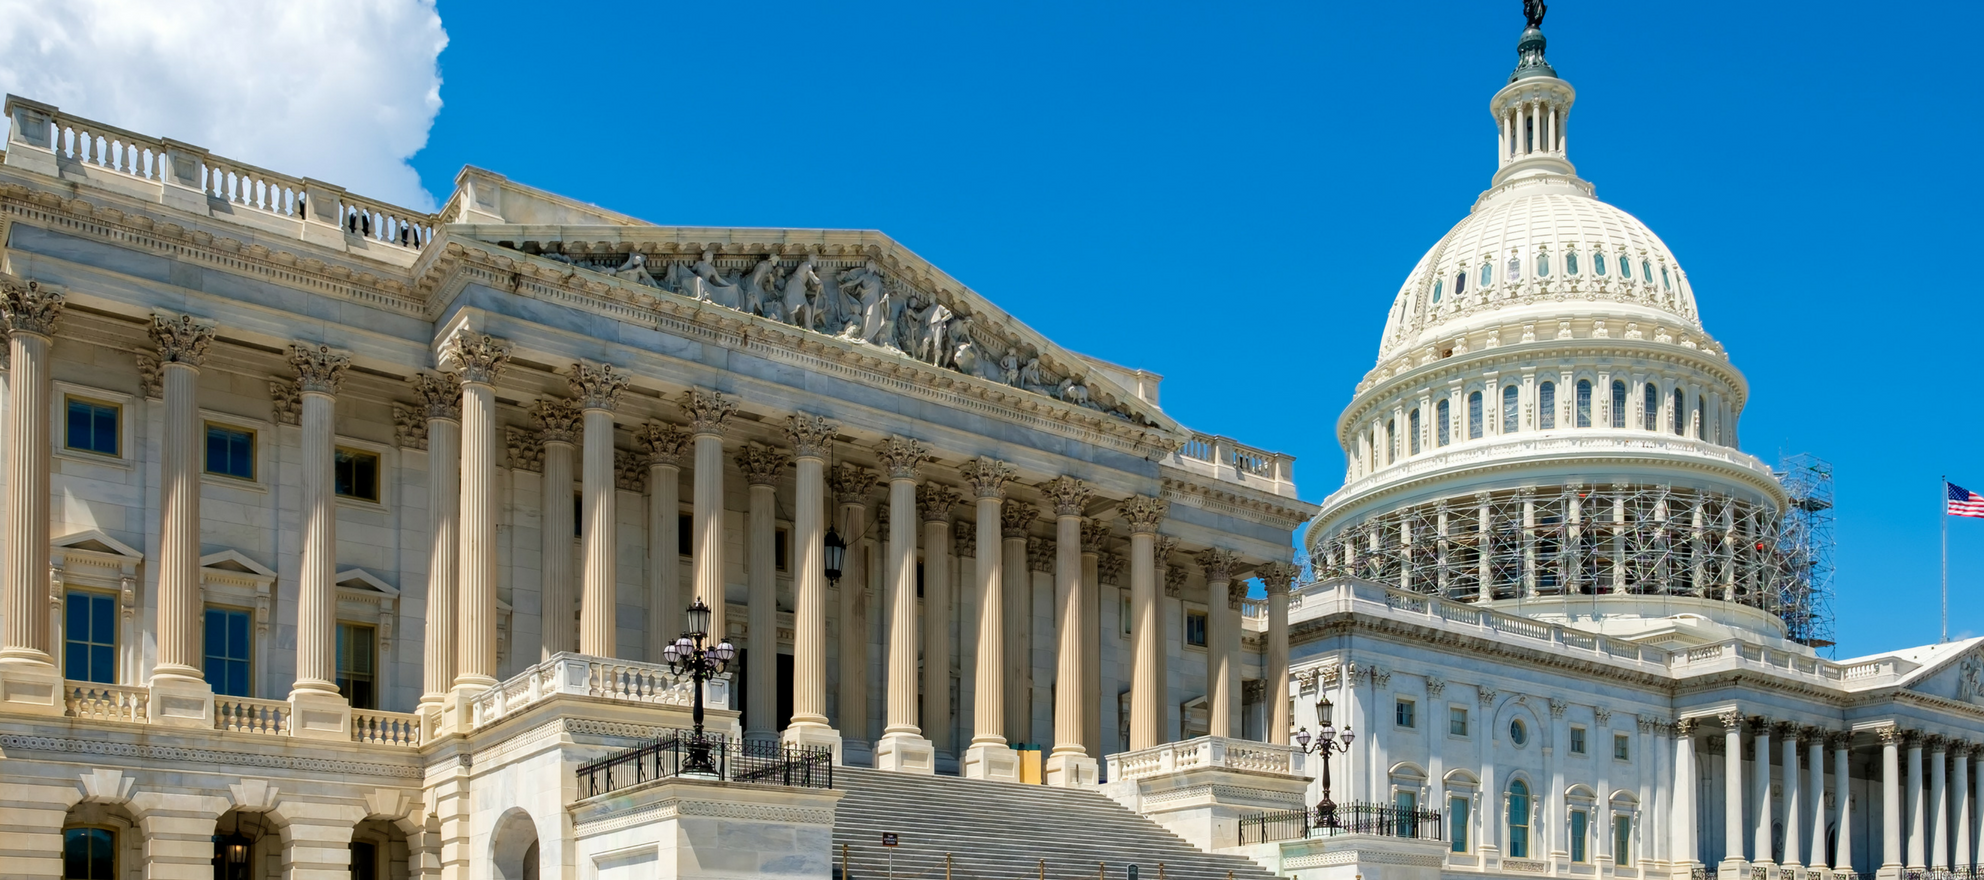 FTC and DOJ release agenda for real estate competition workshop